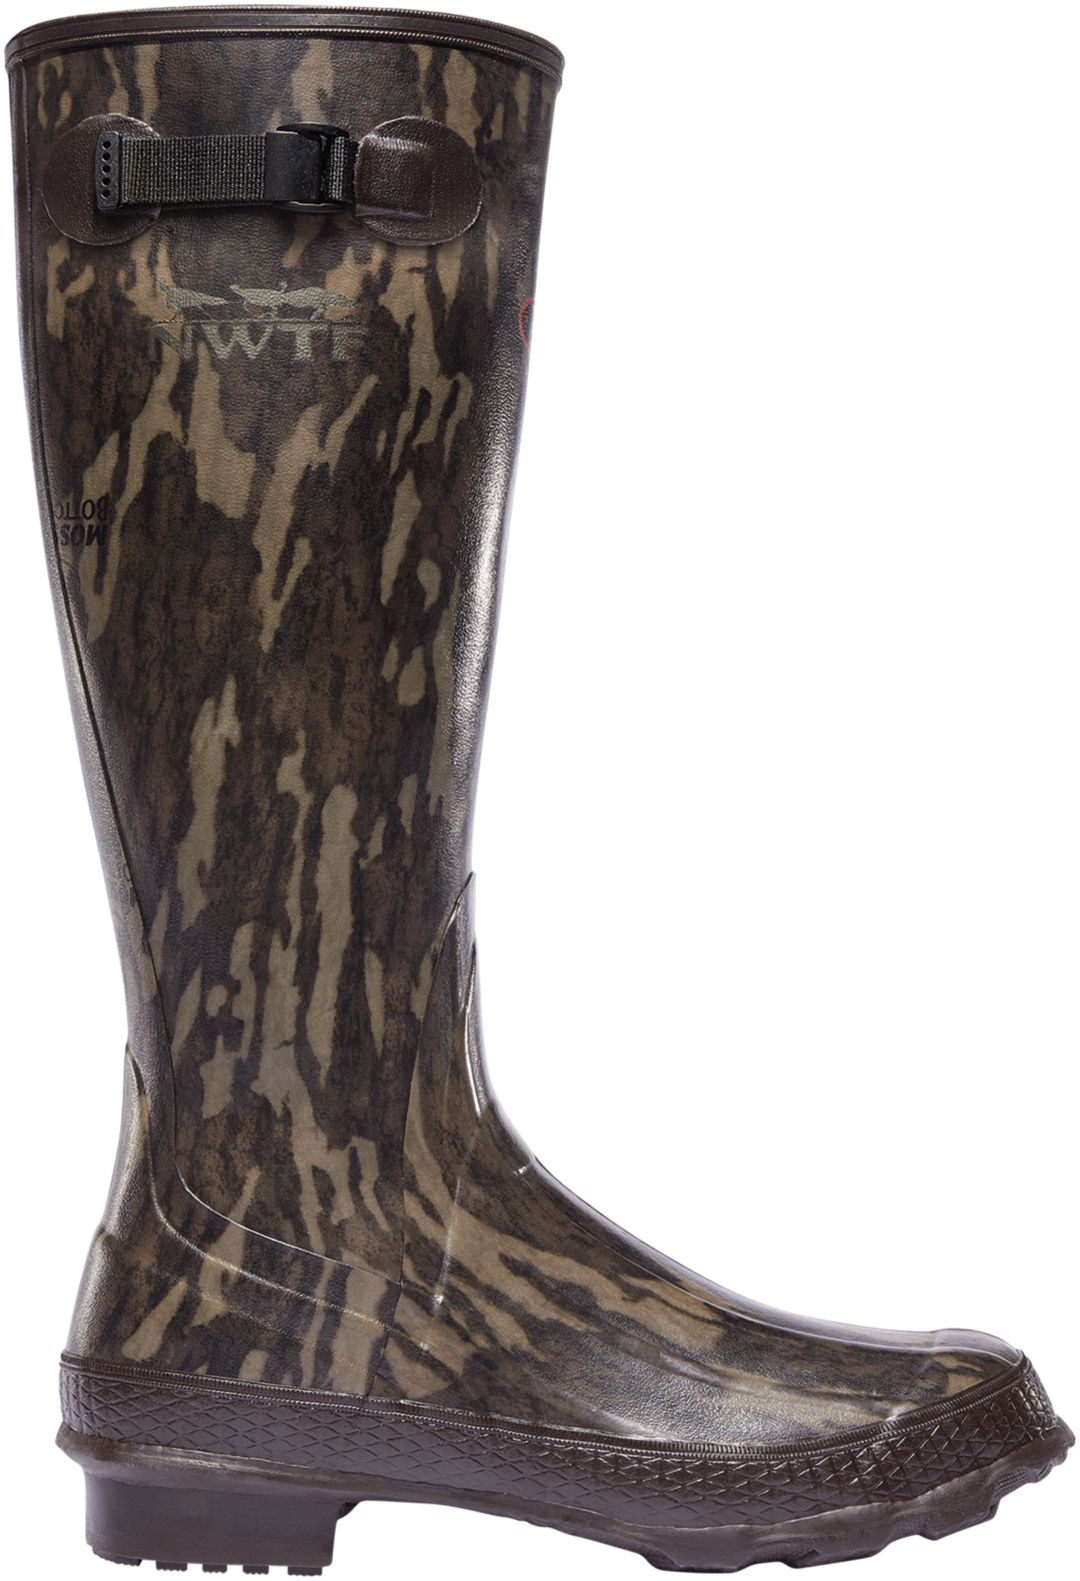 3599ede06aa LaCrosse Men's NWTF Grange Mossy Oak Bottomland Rubber Hunting Boots